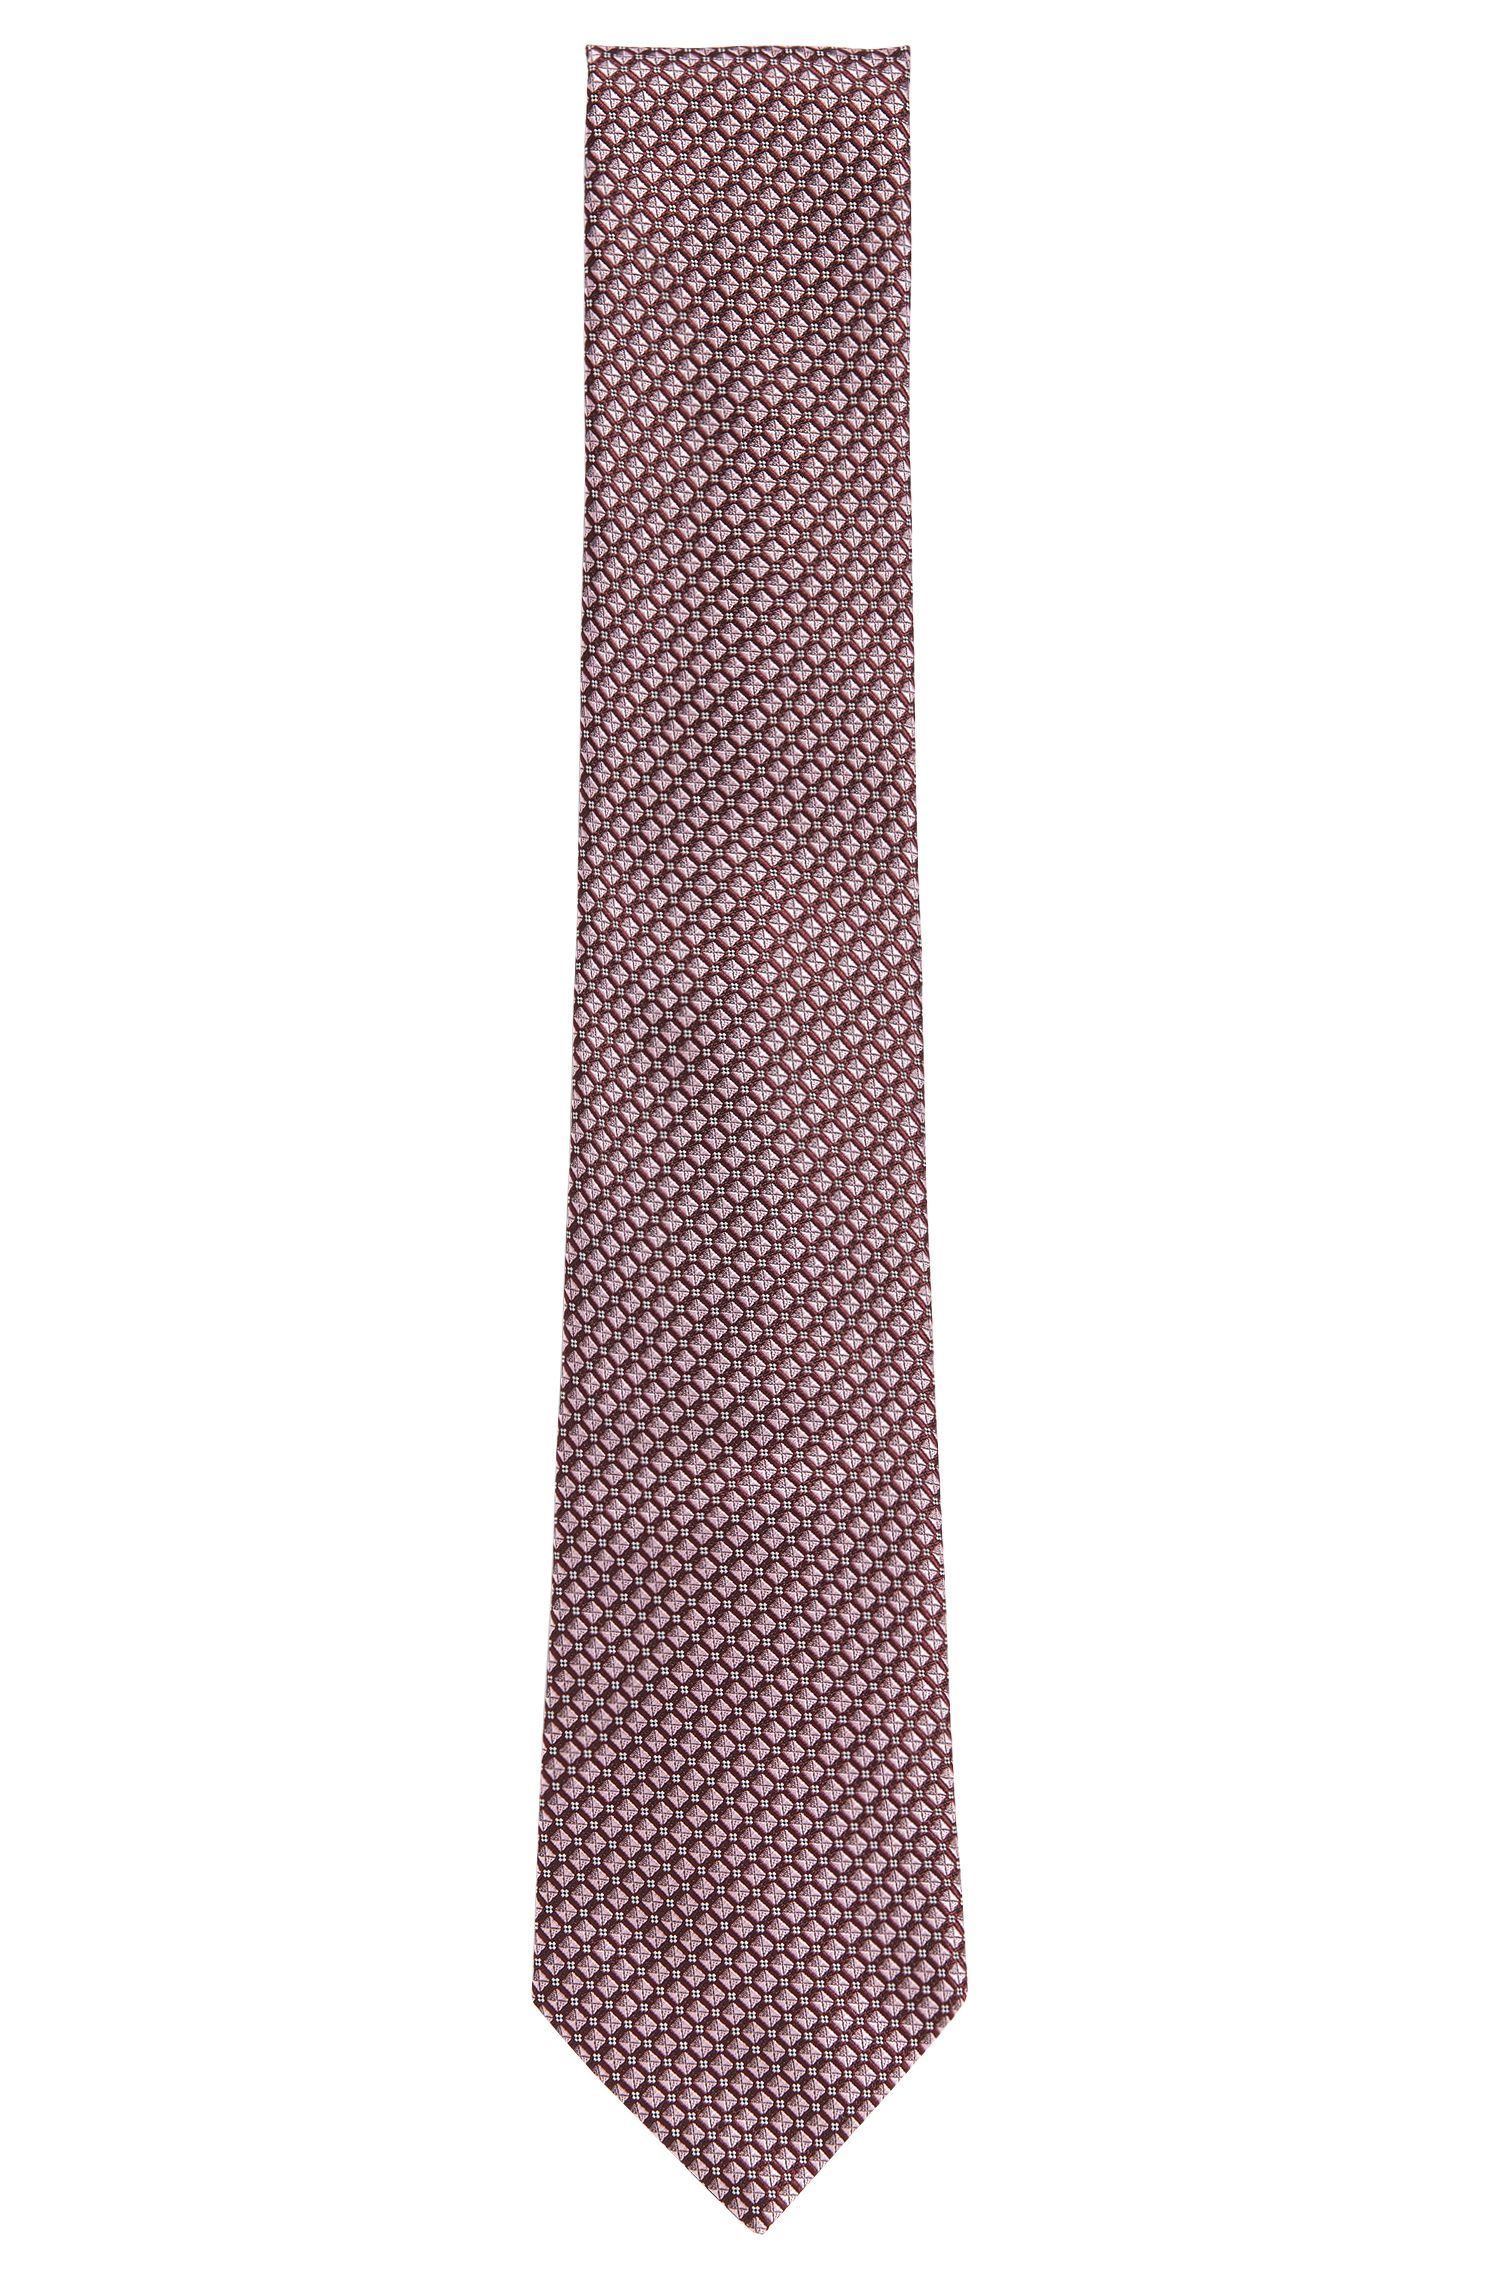 'Tie 7.5 cm' | Regular, Silk Geo Patterned Tie